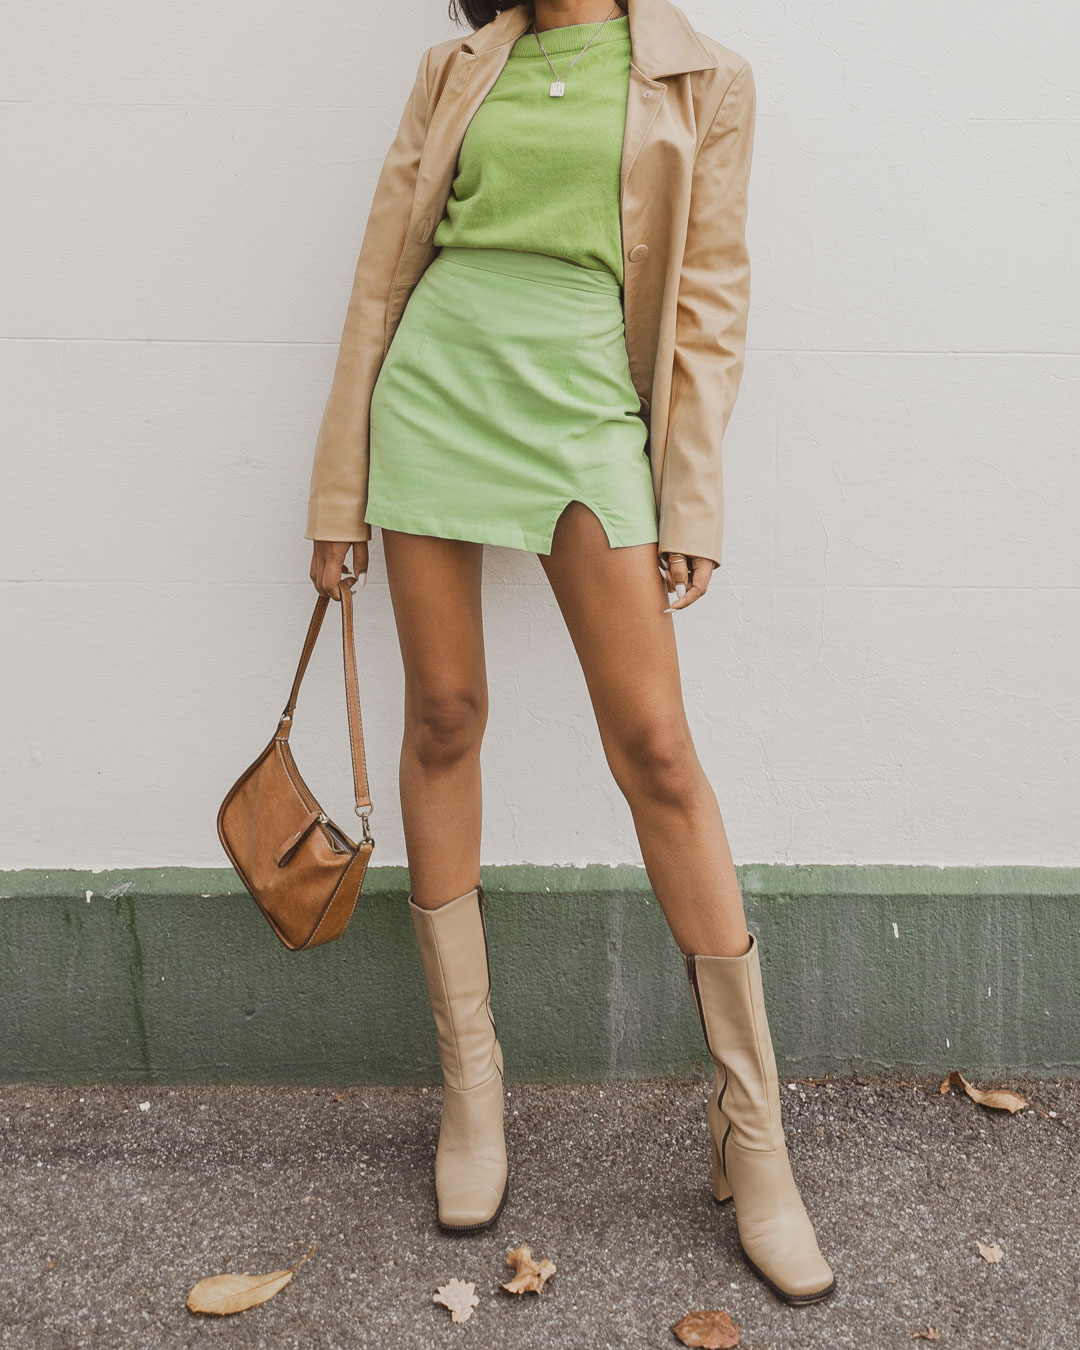 Green Outfit Image